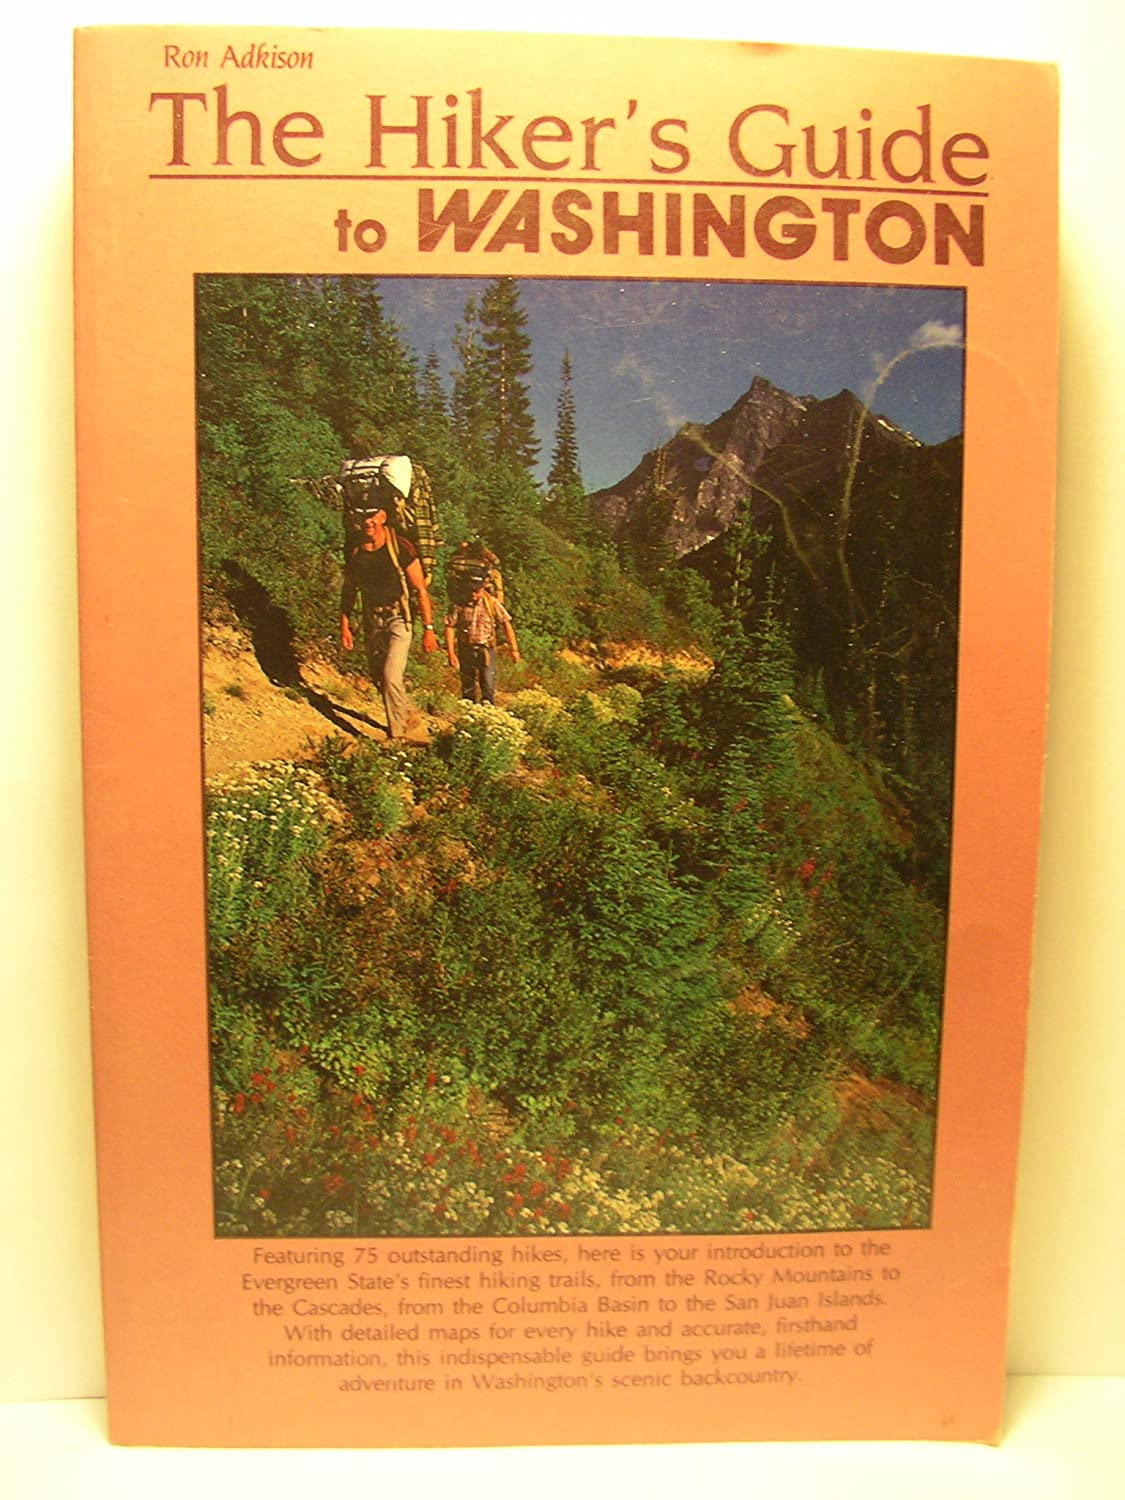 The hiker's guide to Washington, Adkison, Ron